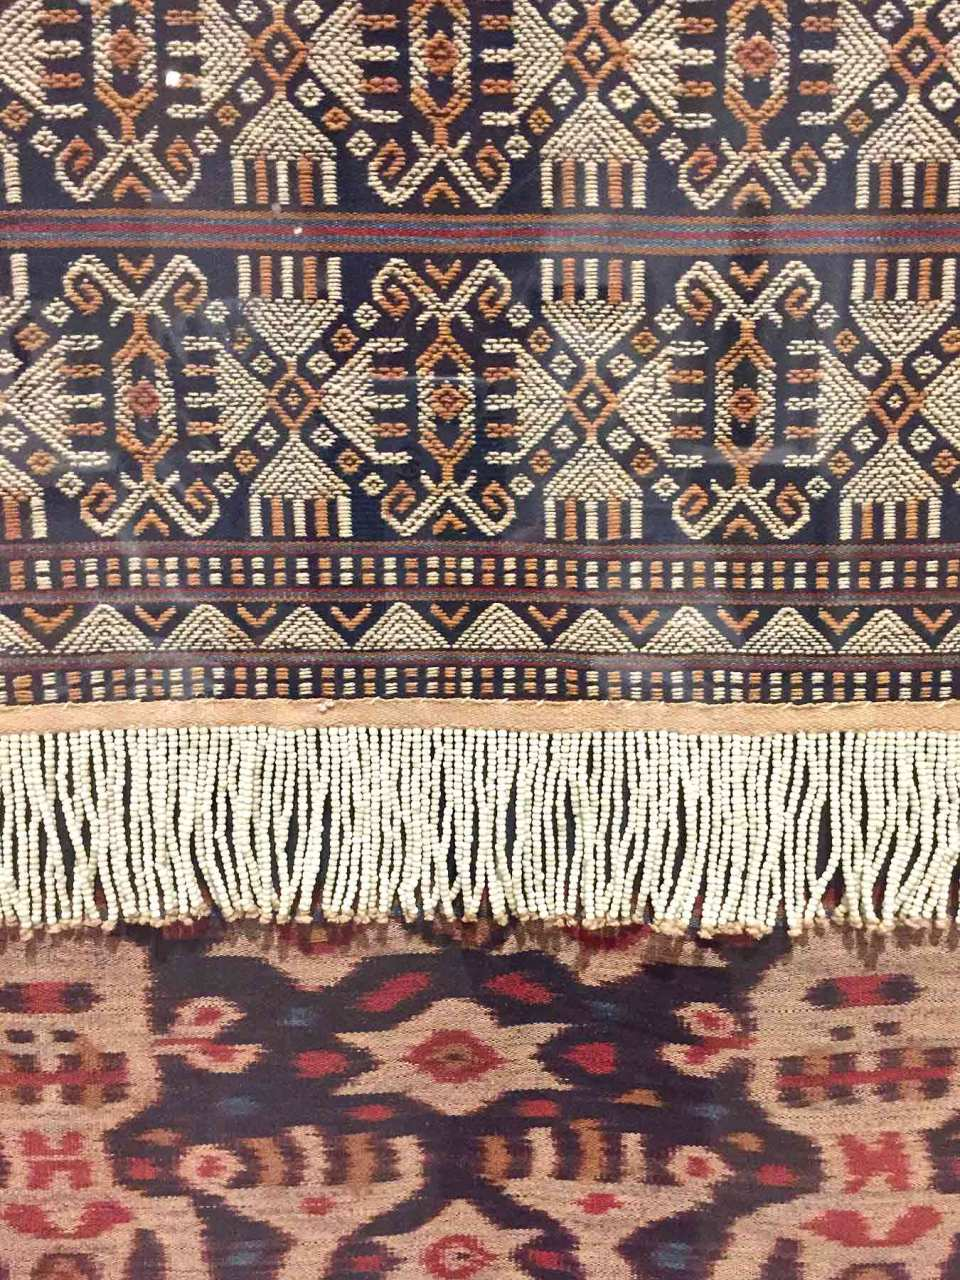 Weaving from Pacific Islands